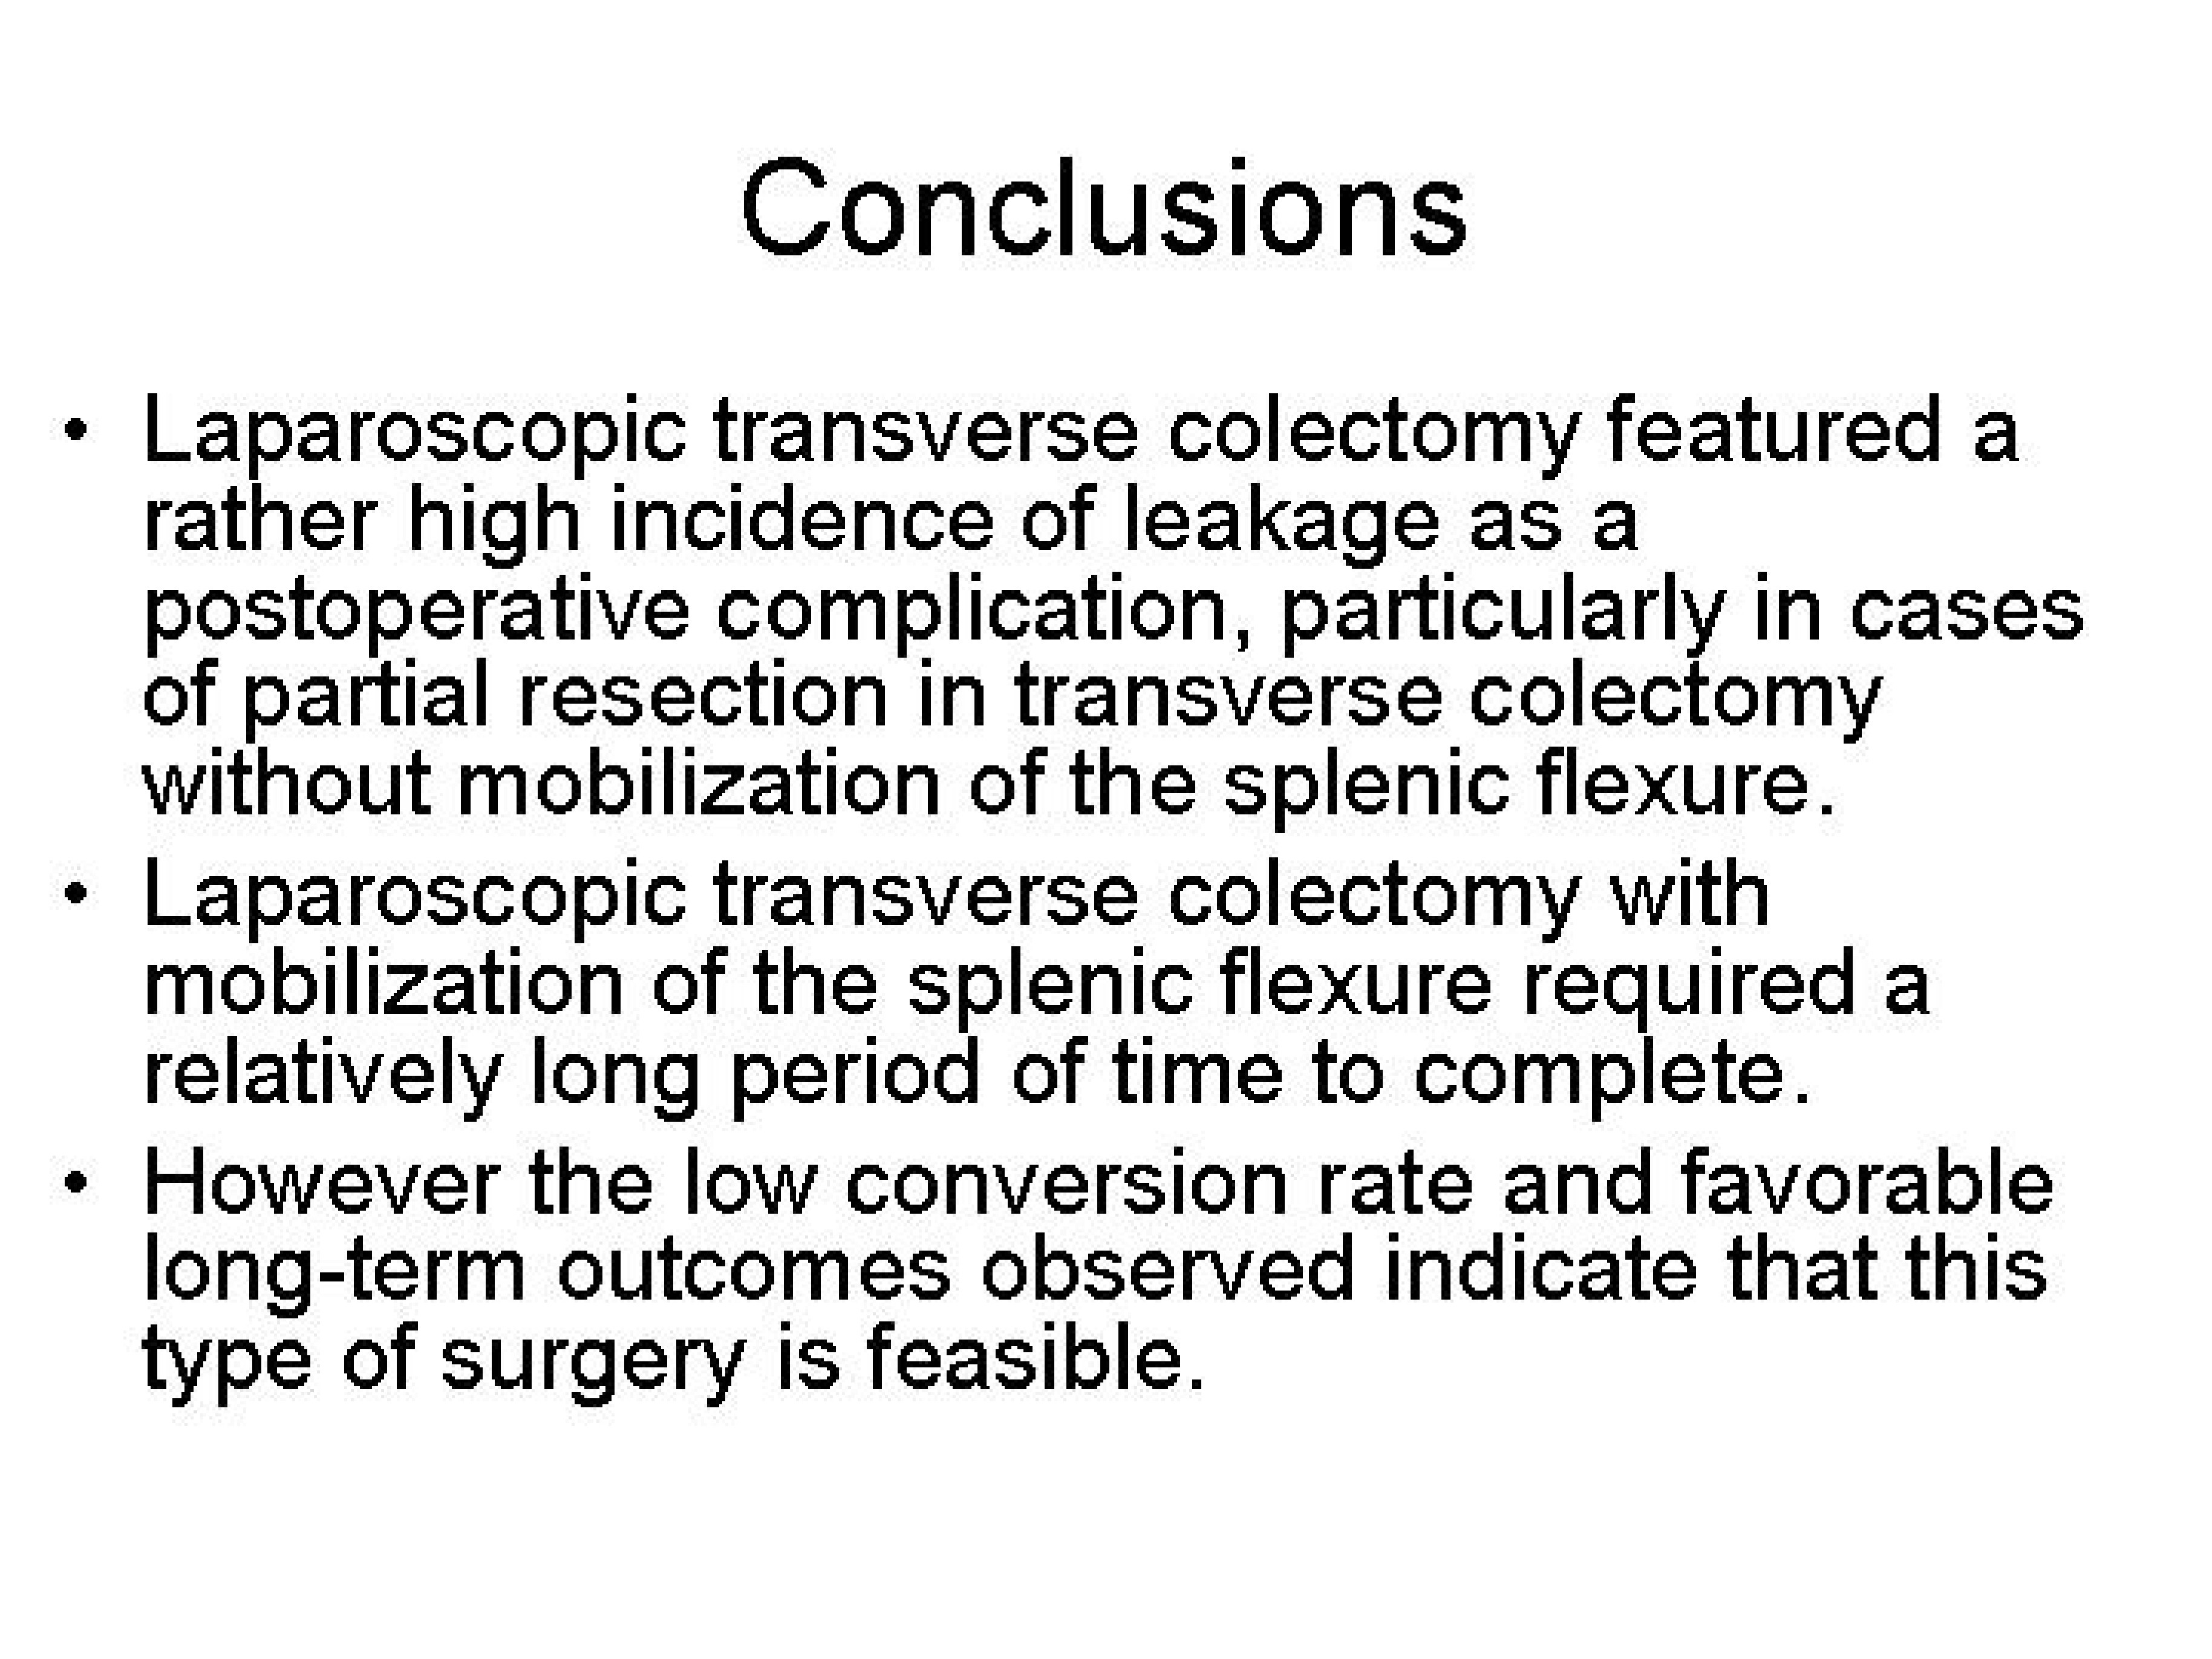 Laparoscopic Colectomy With Radical Lymph Node Dissection For Transverse Colon Cancer Sages Abstract Archives